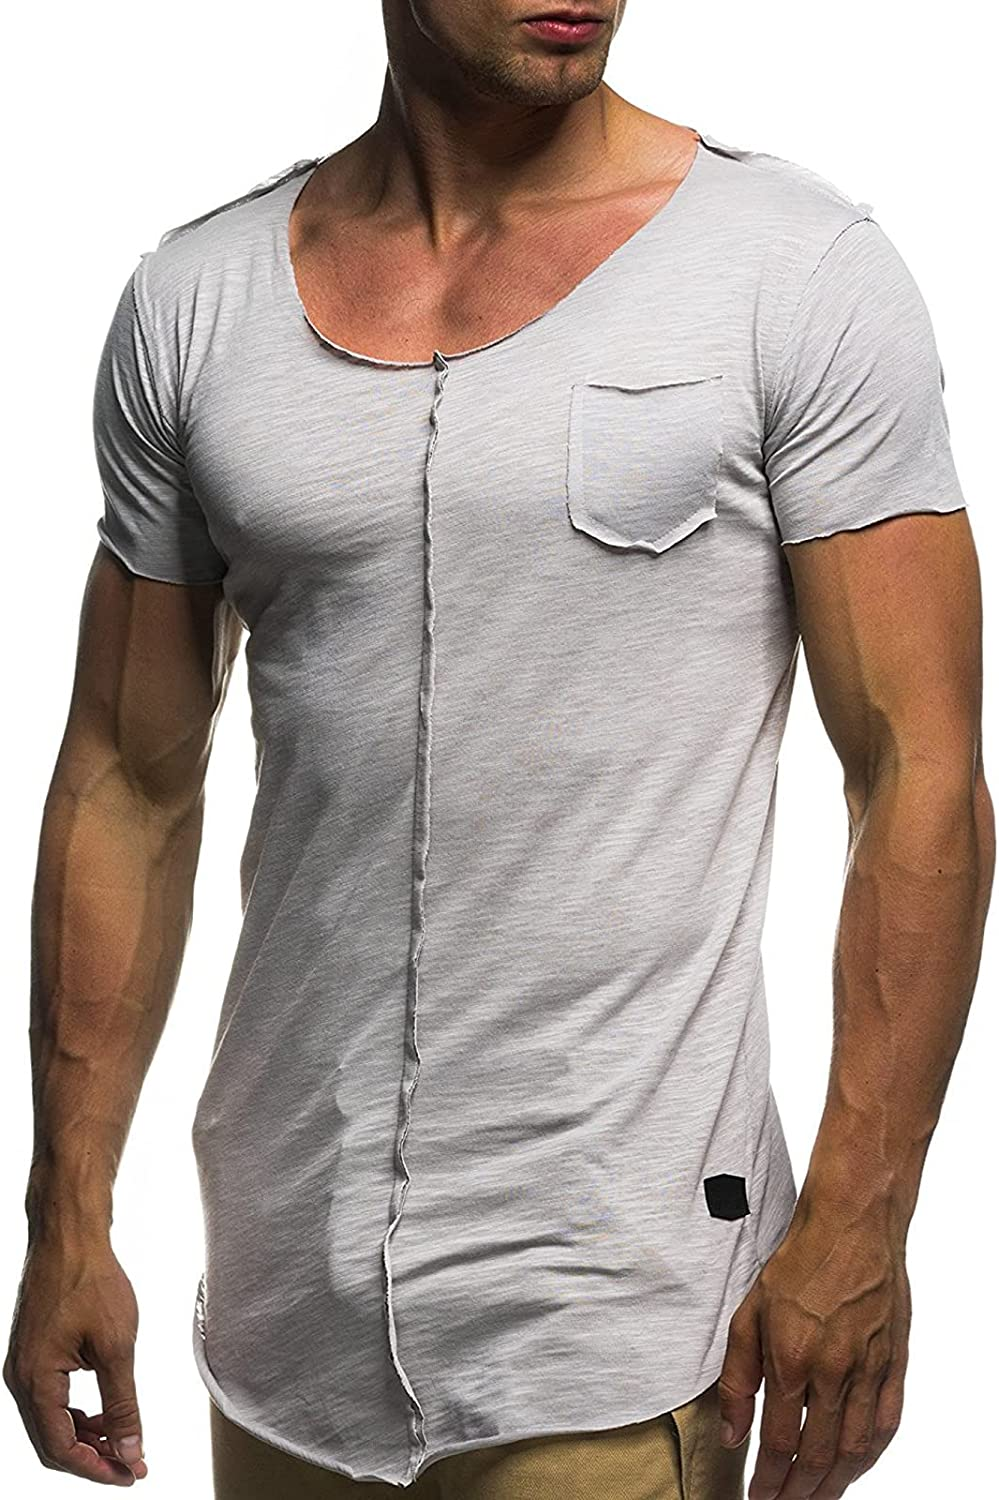 Men's Athletic Shirts Cheap Brand new SALE Start Muscle Hipster Sleeve Short Fashion Ca Gym